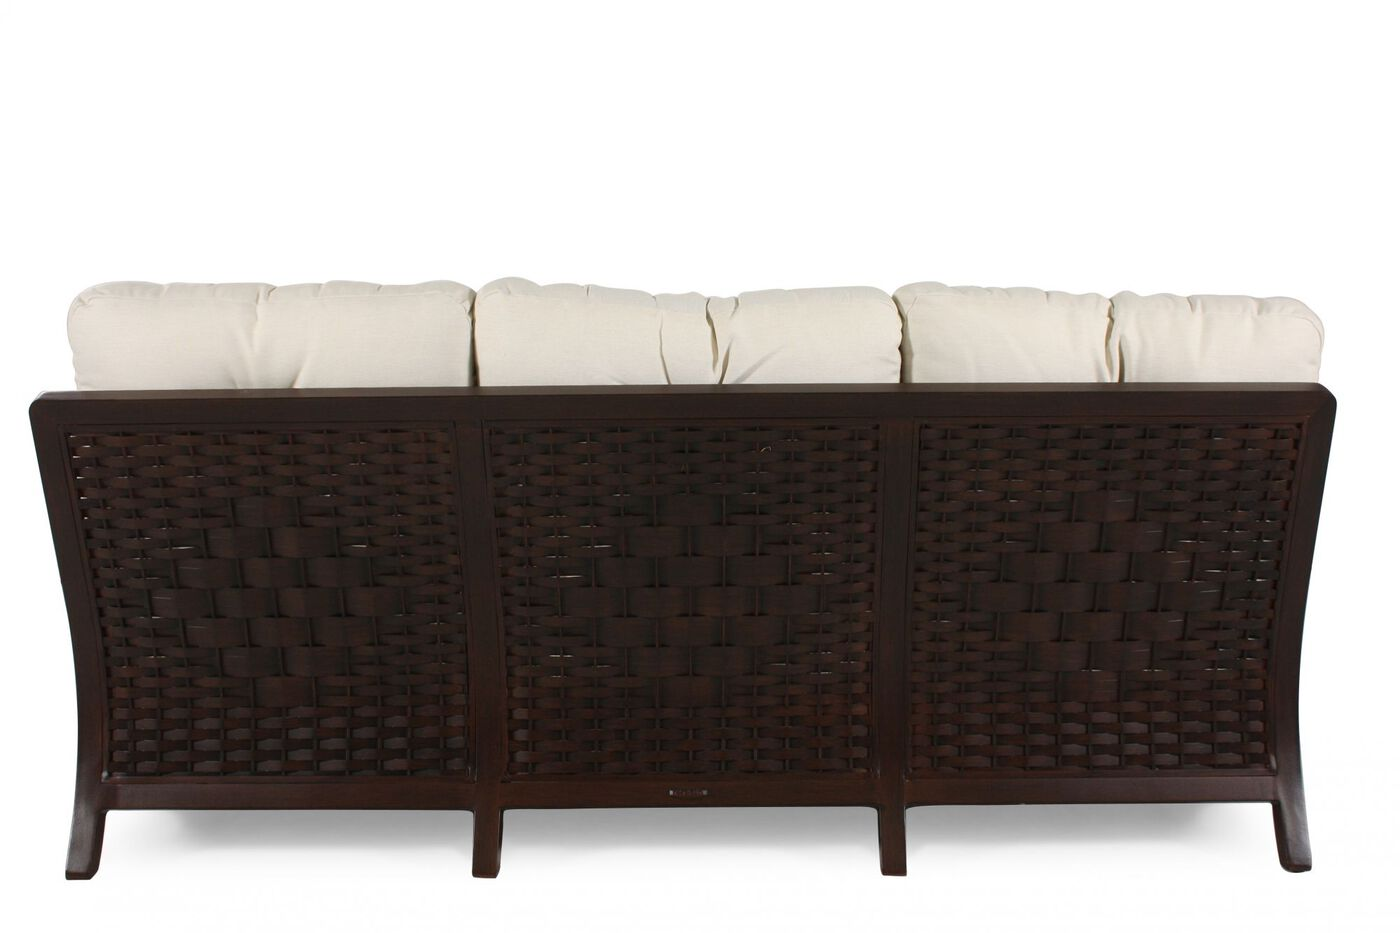 Castelle Spanish Bay Patio Sofa